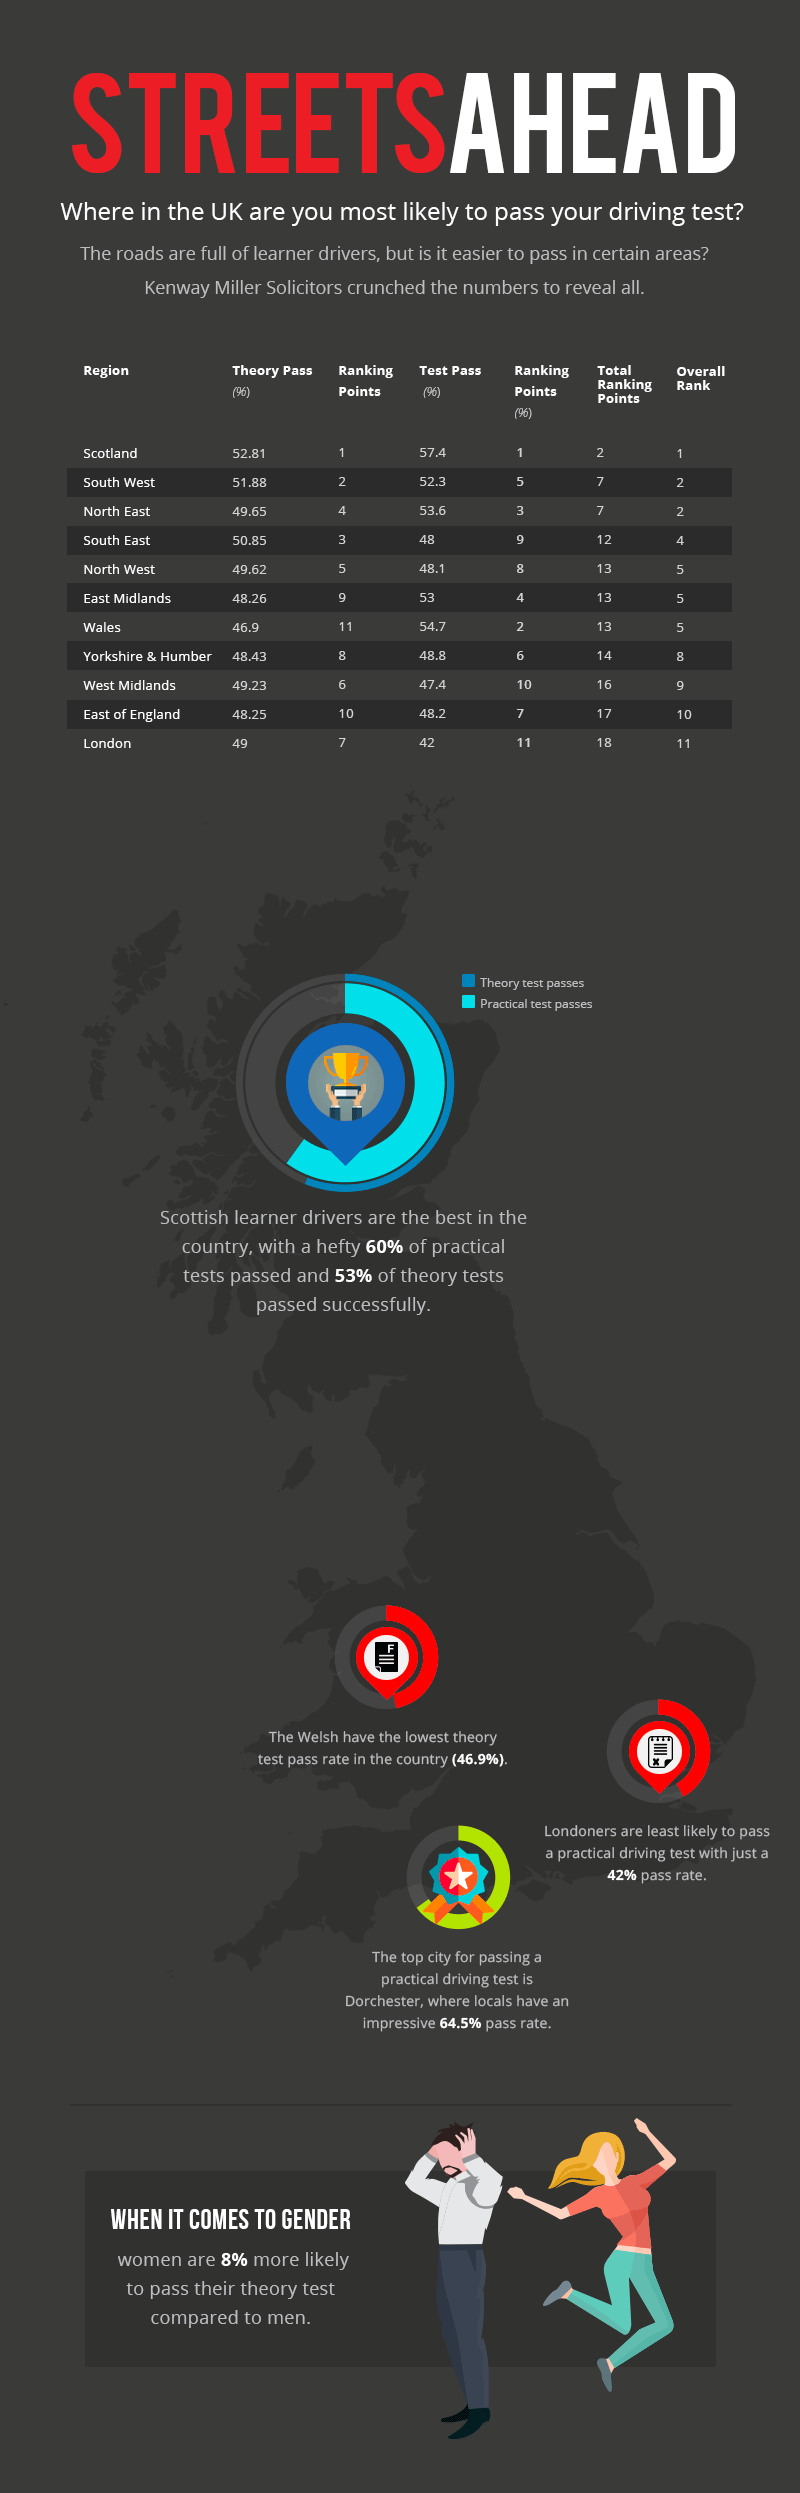 Scotland has the best learner drivers. Infographic and data